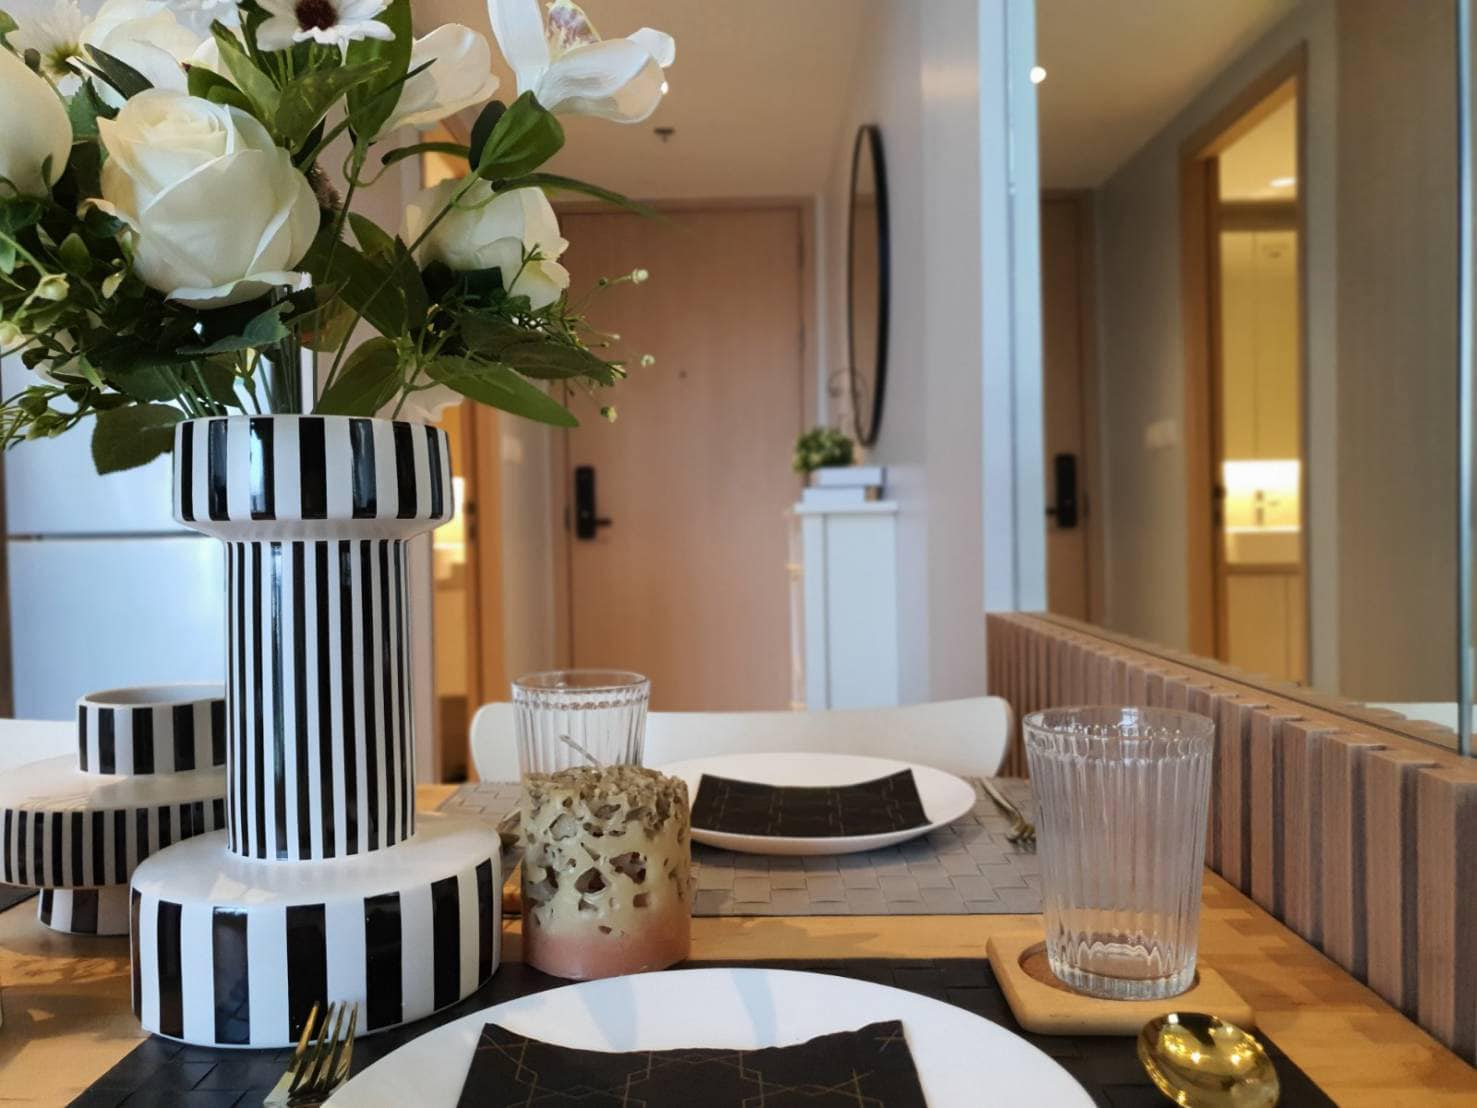 Bangkok Property Condo Apartment House Real Estate For Sale in Slilom Surasak Loft Style with City View